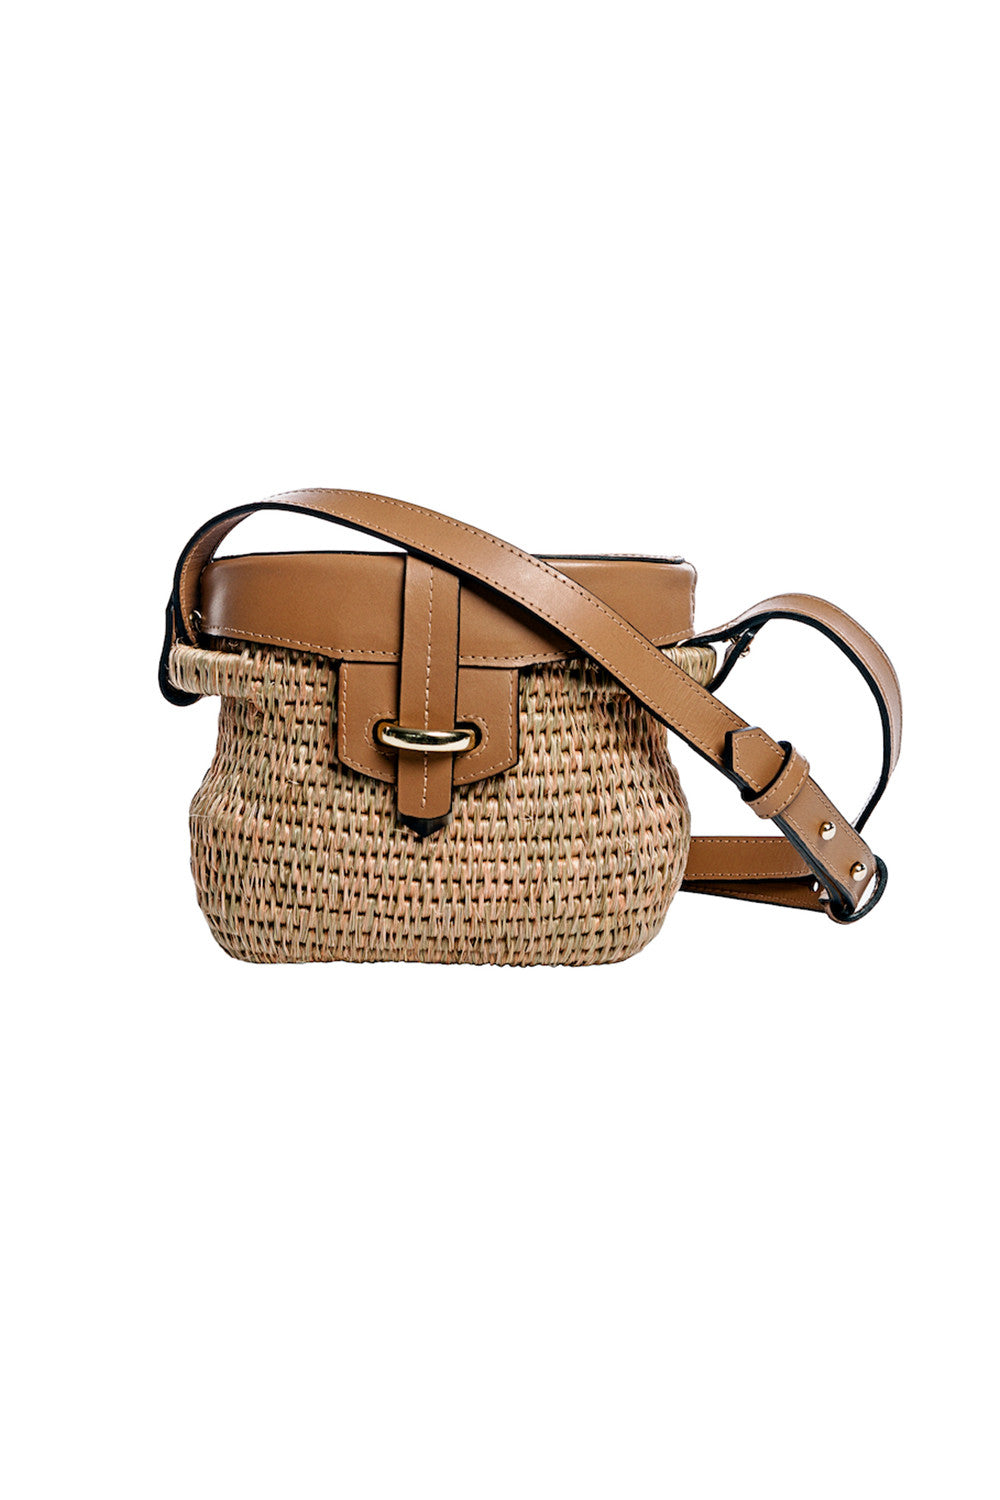 Mini Jabu Woven Basket Bag in Smoke & Blush